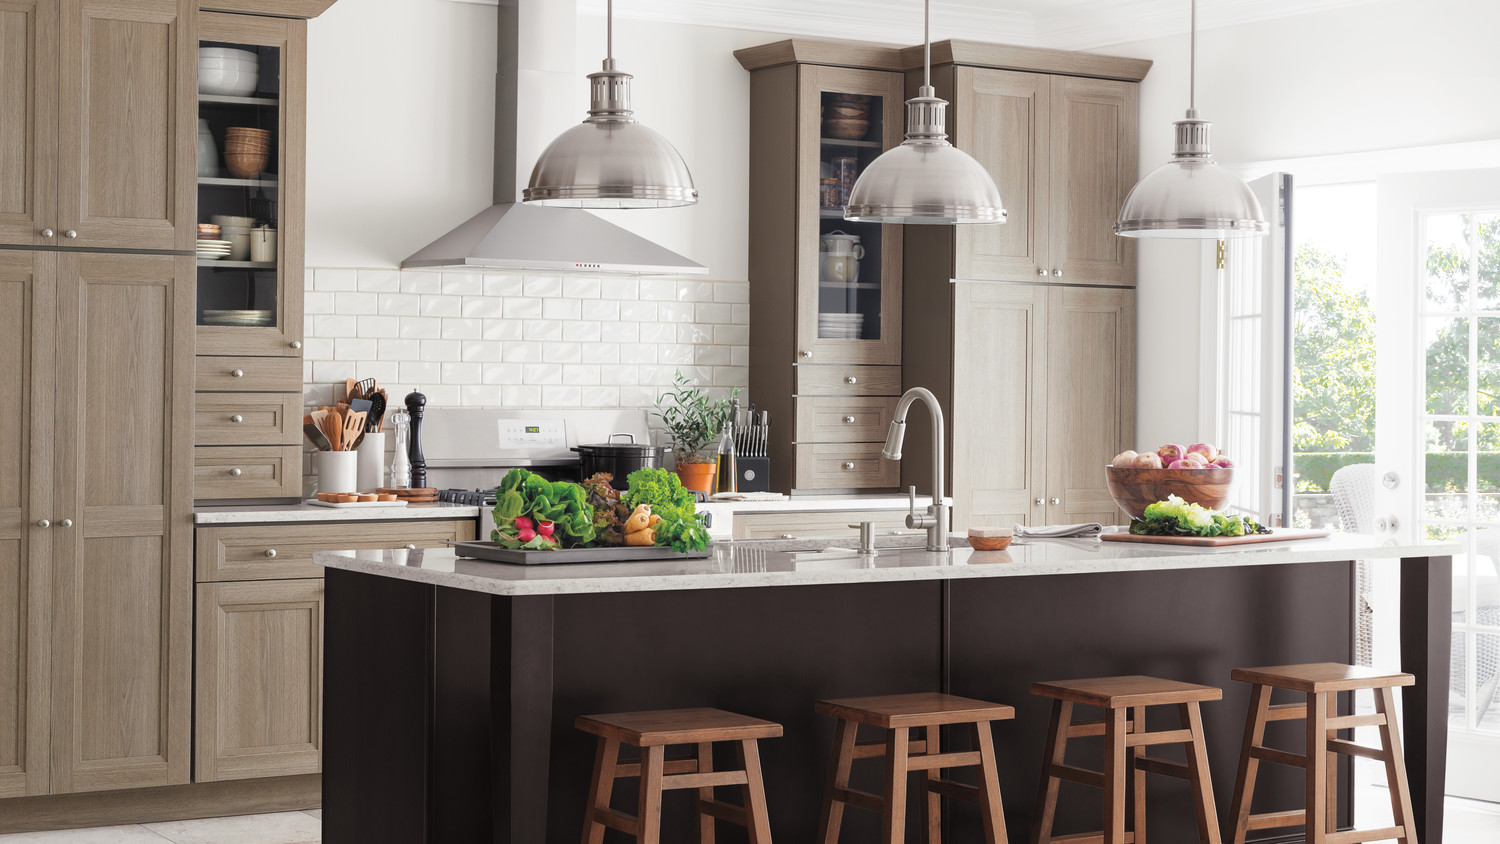 Video Martha Shares Her Kitchen Design Inspiration